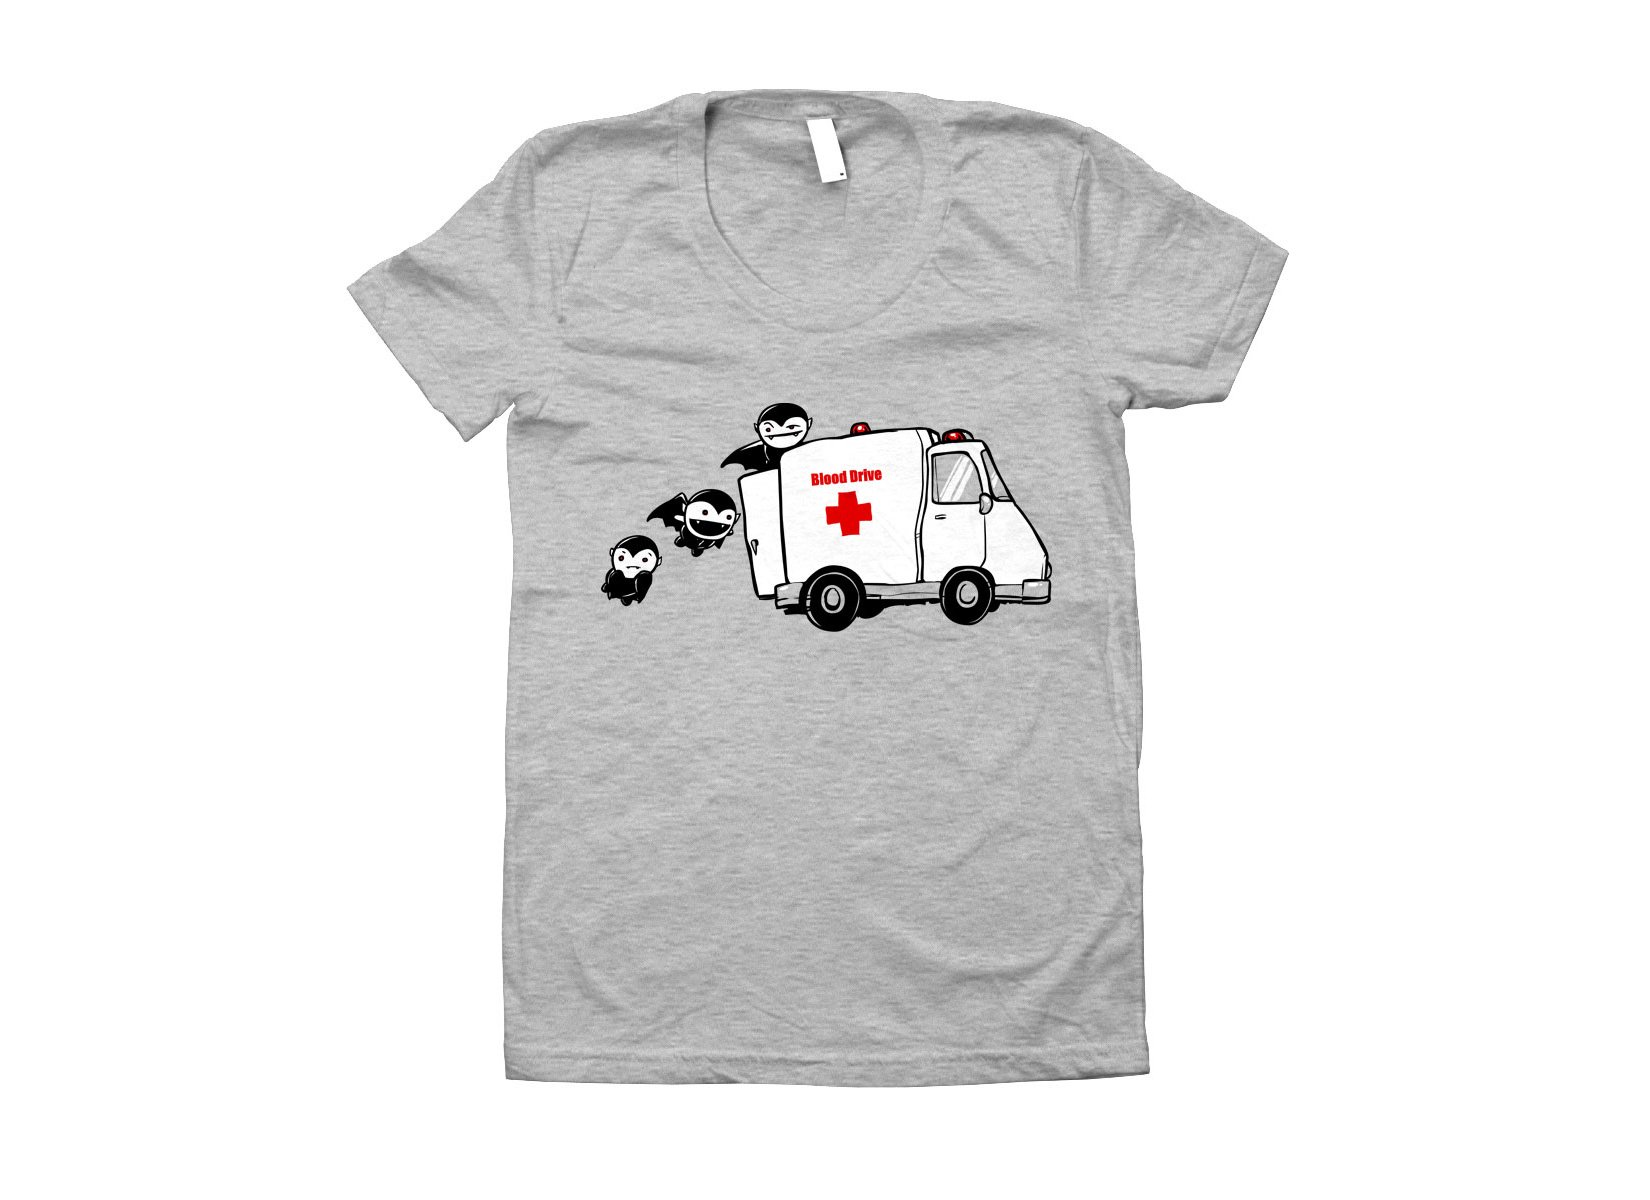 Blood Drive Vampires on Juniors T-Shirt